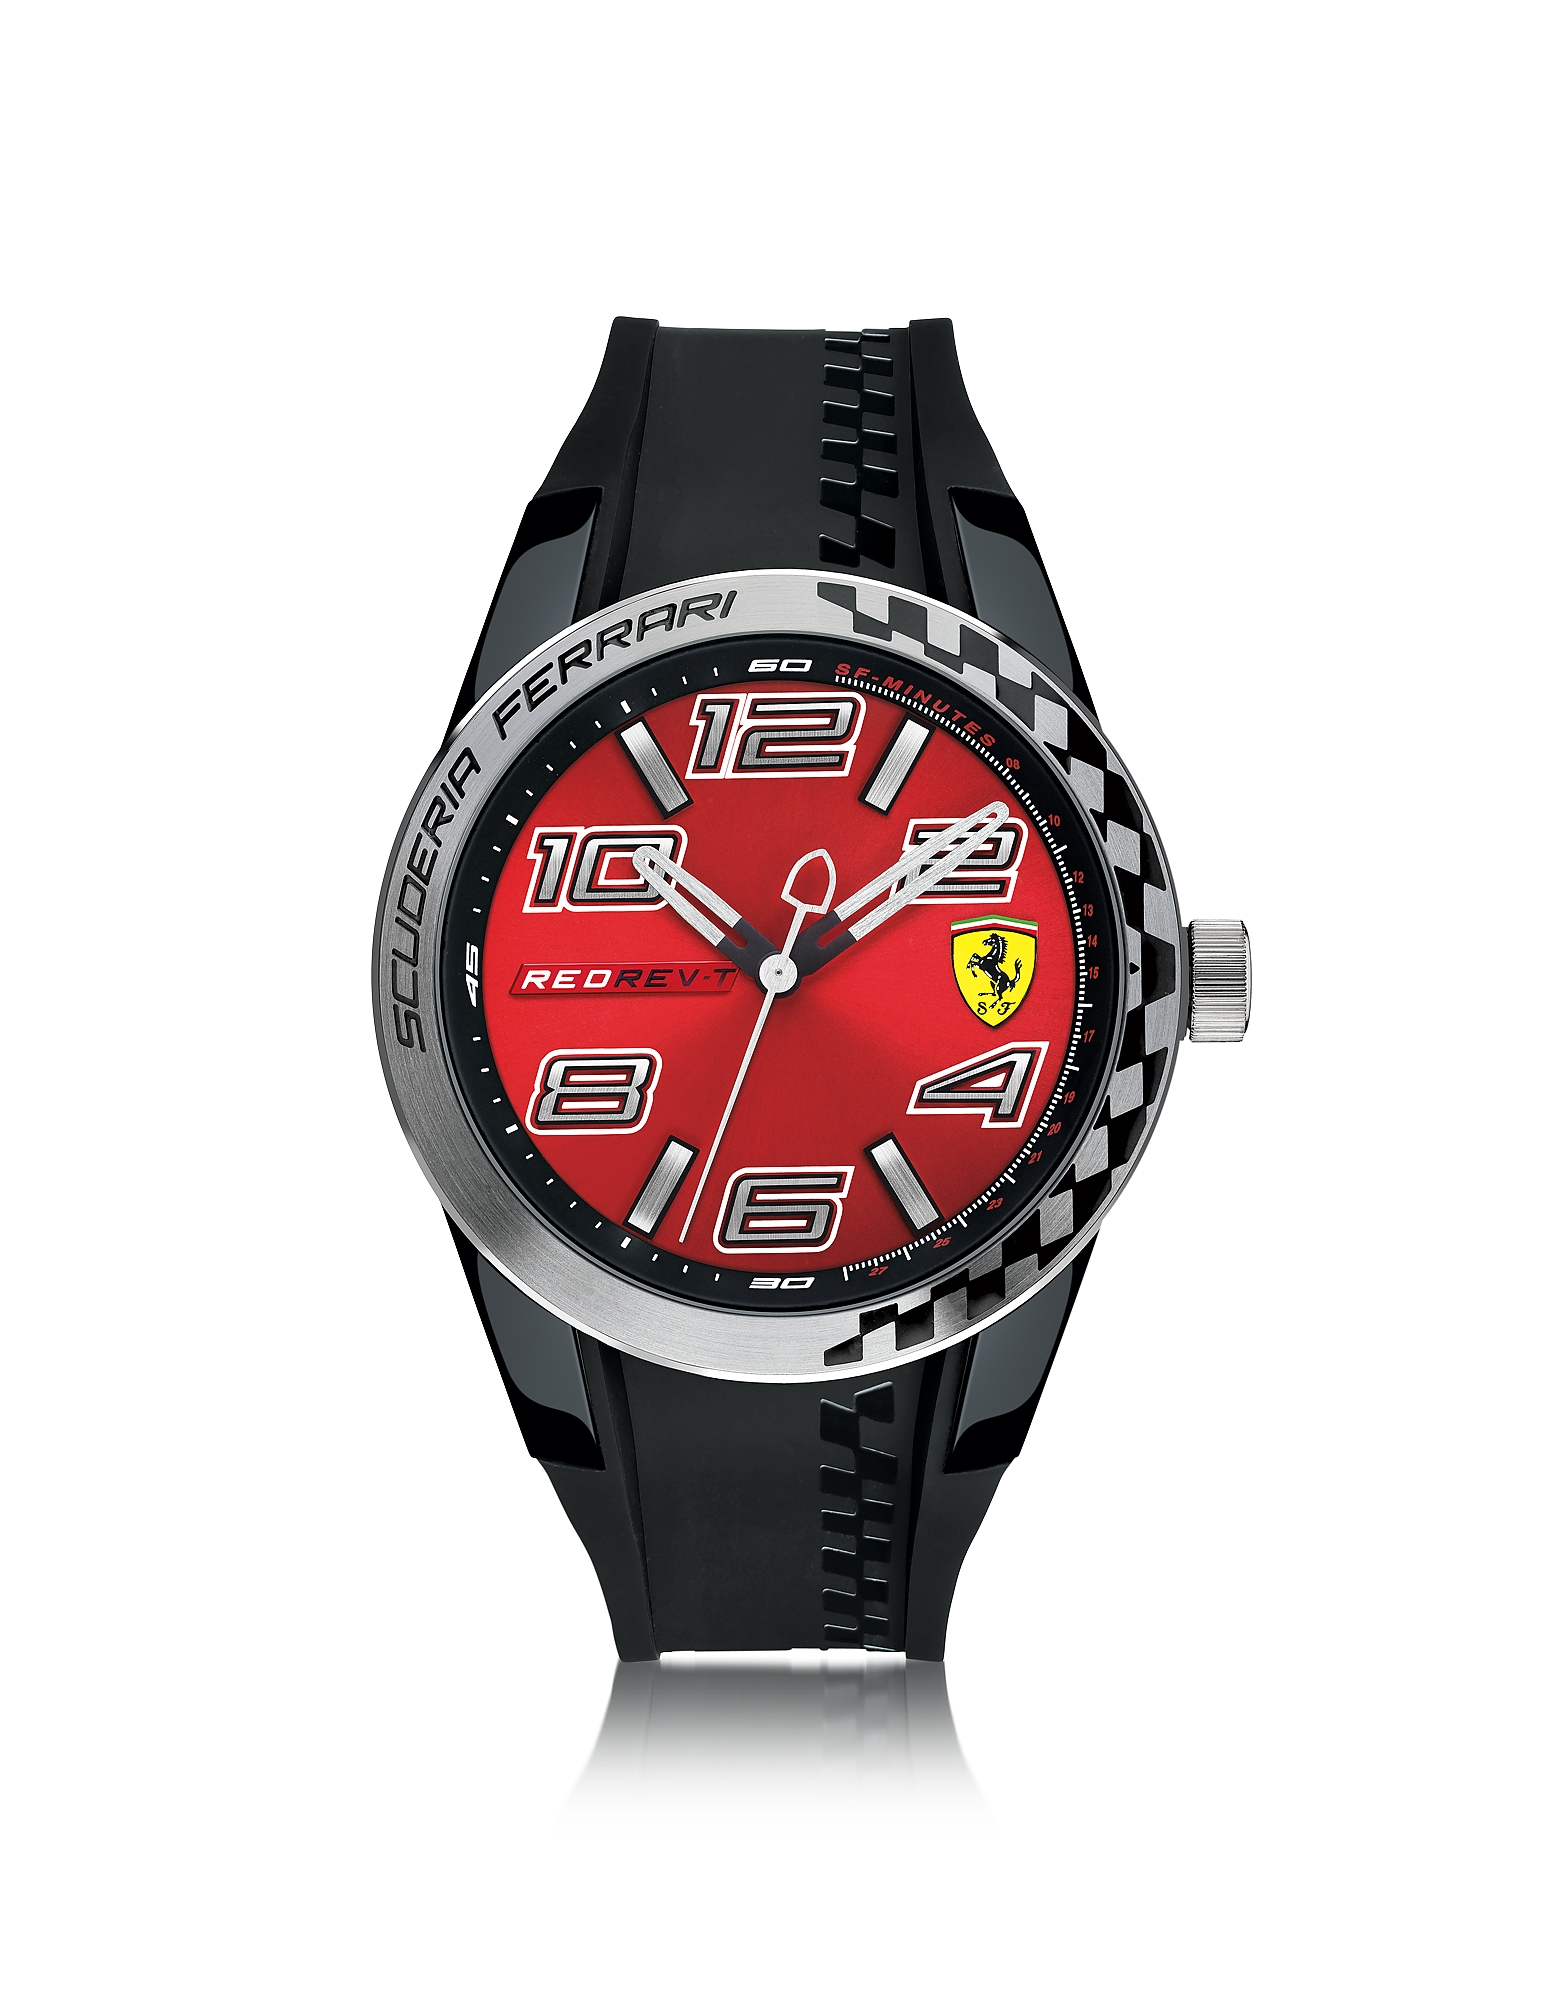 Ferrari Men's Watches, Red Rev T Silver Tone Stainless Steel Case and Black Silicone Strap Men's Wat